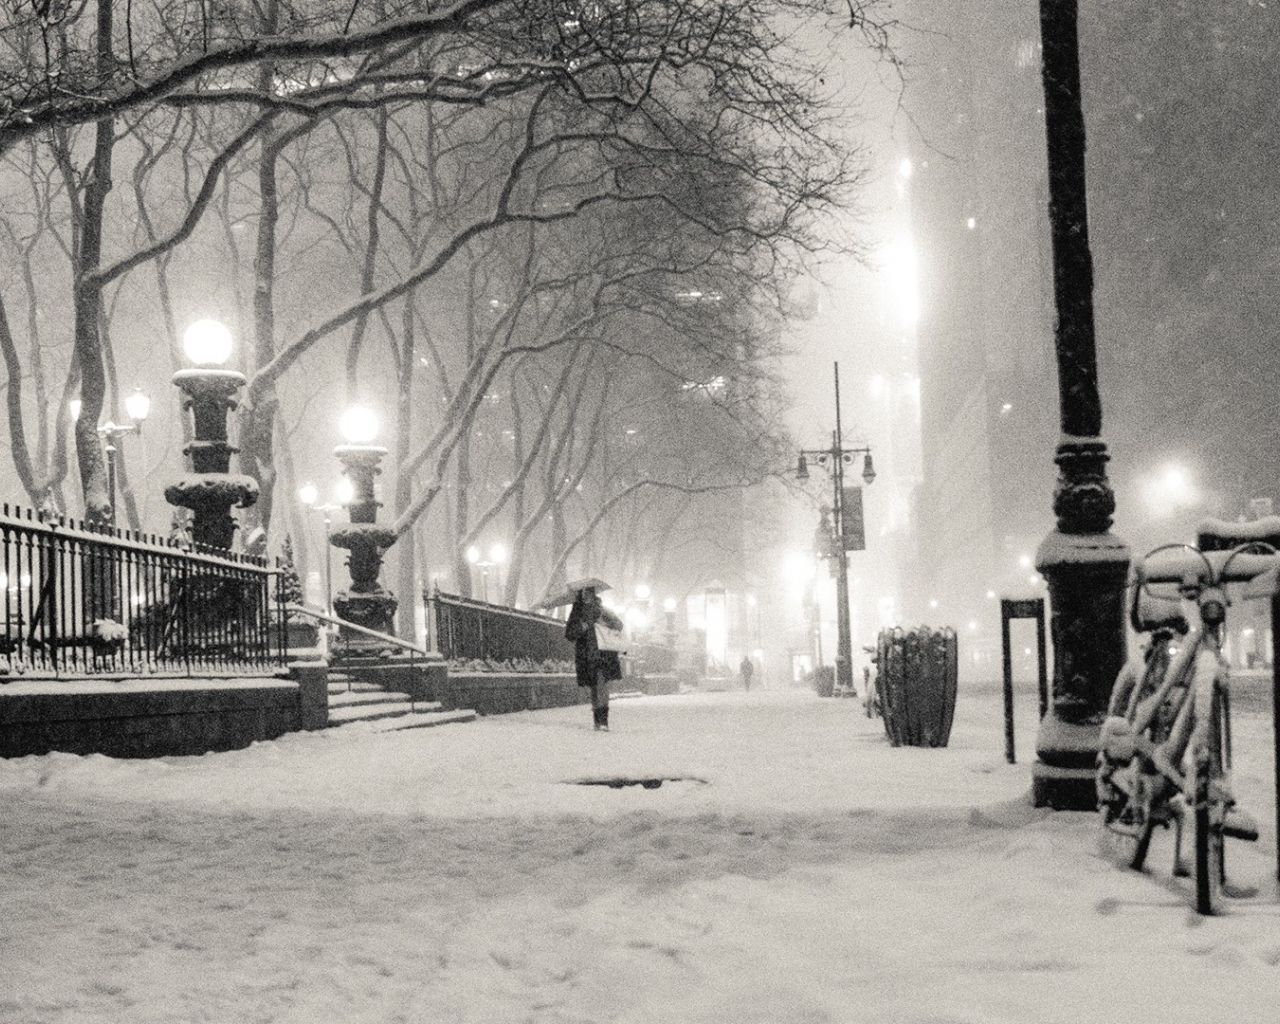 Free Download Wallpapers Black And White Winter Snow New York City